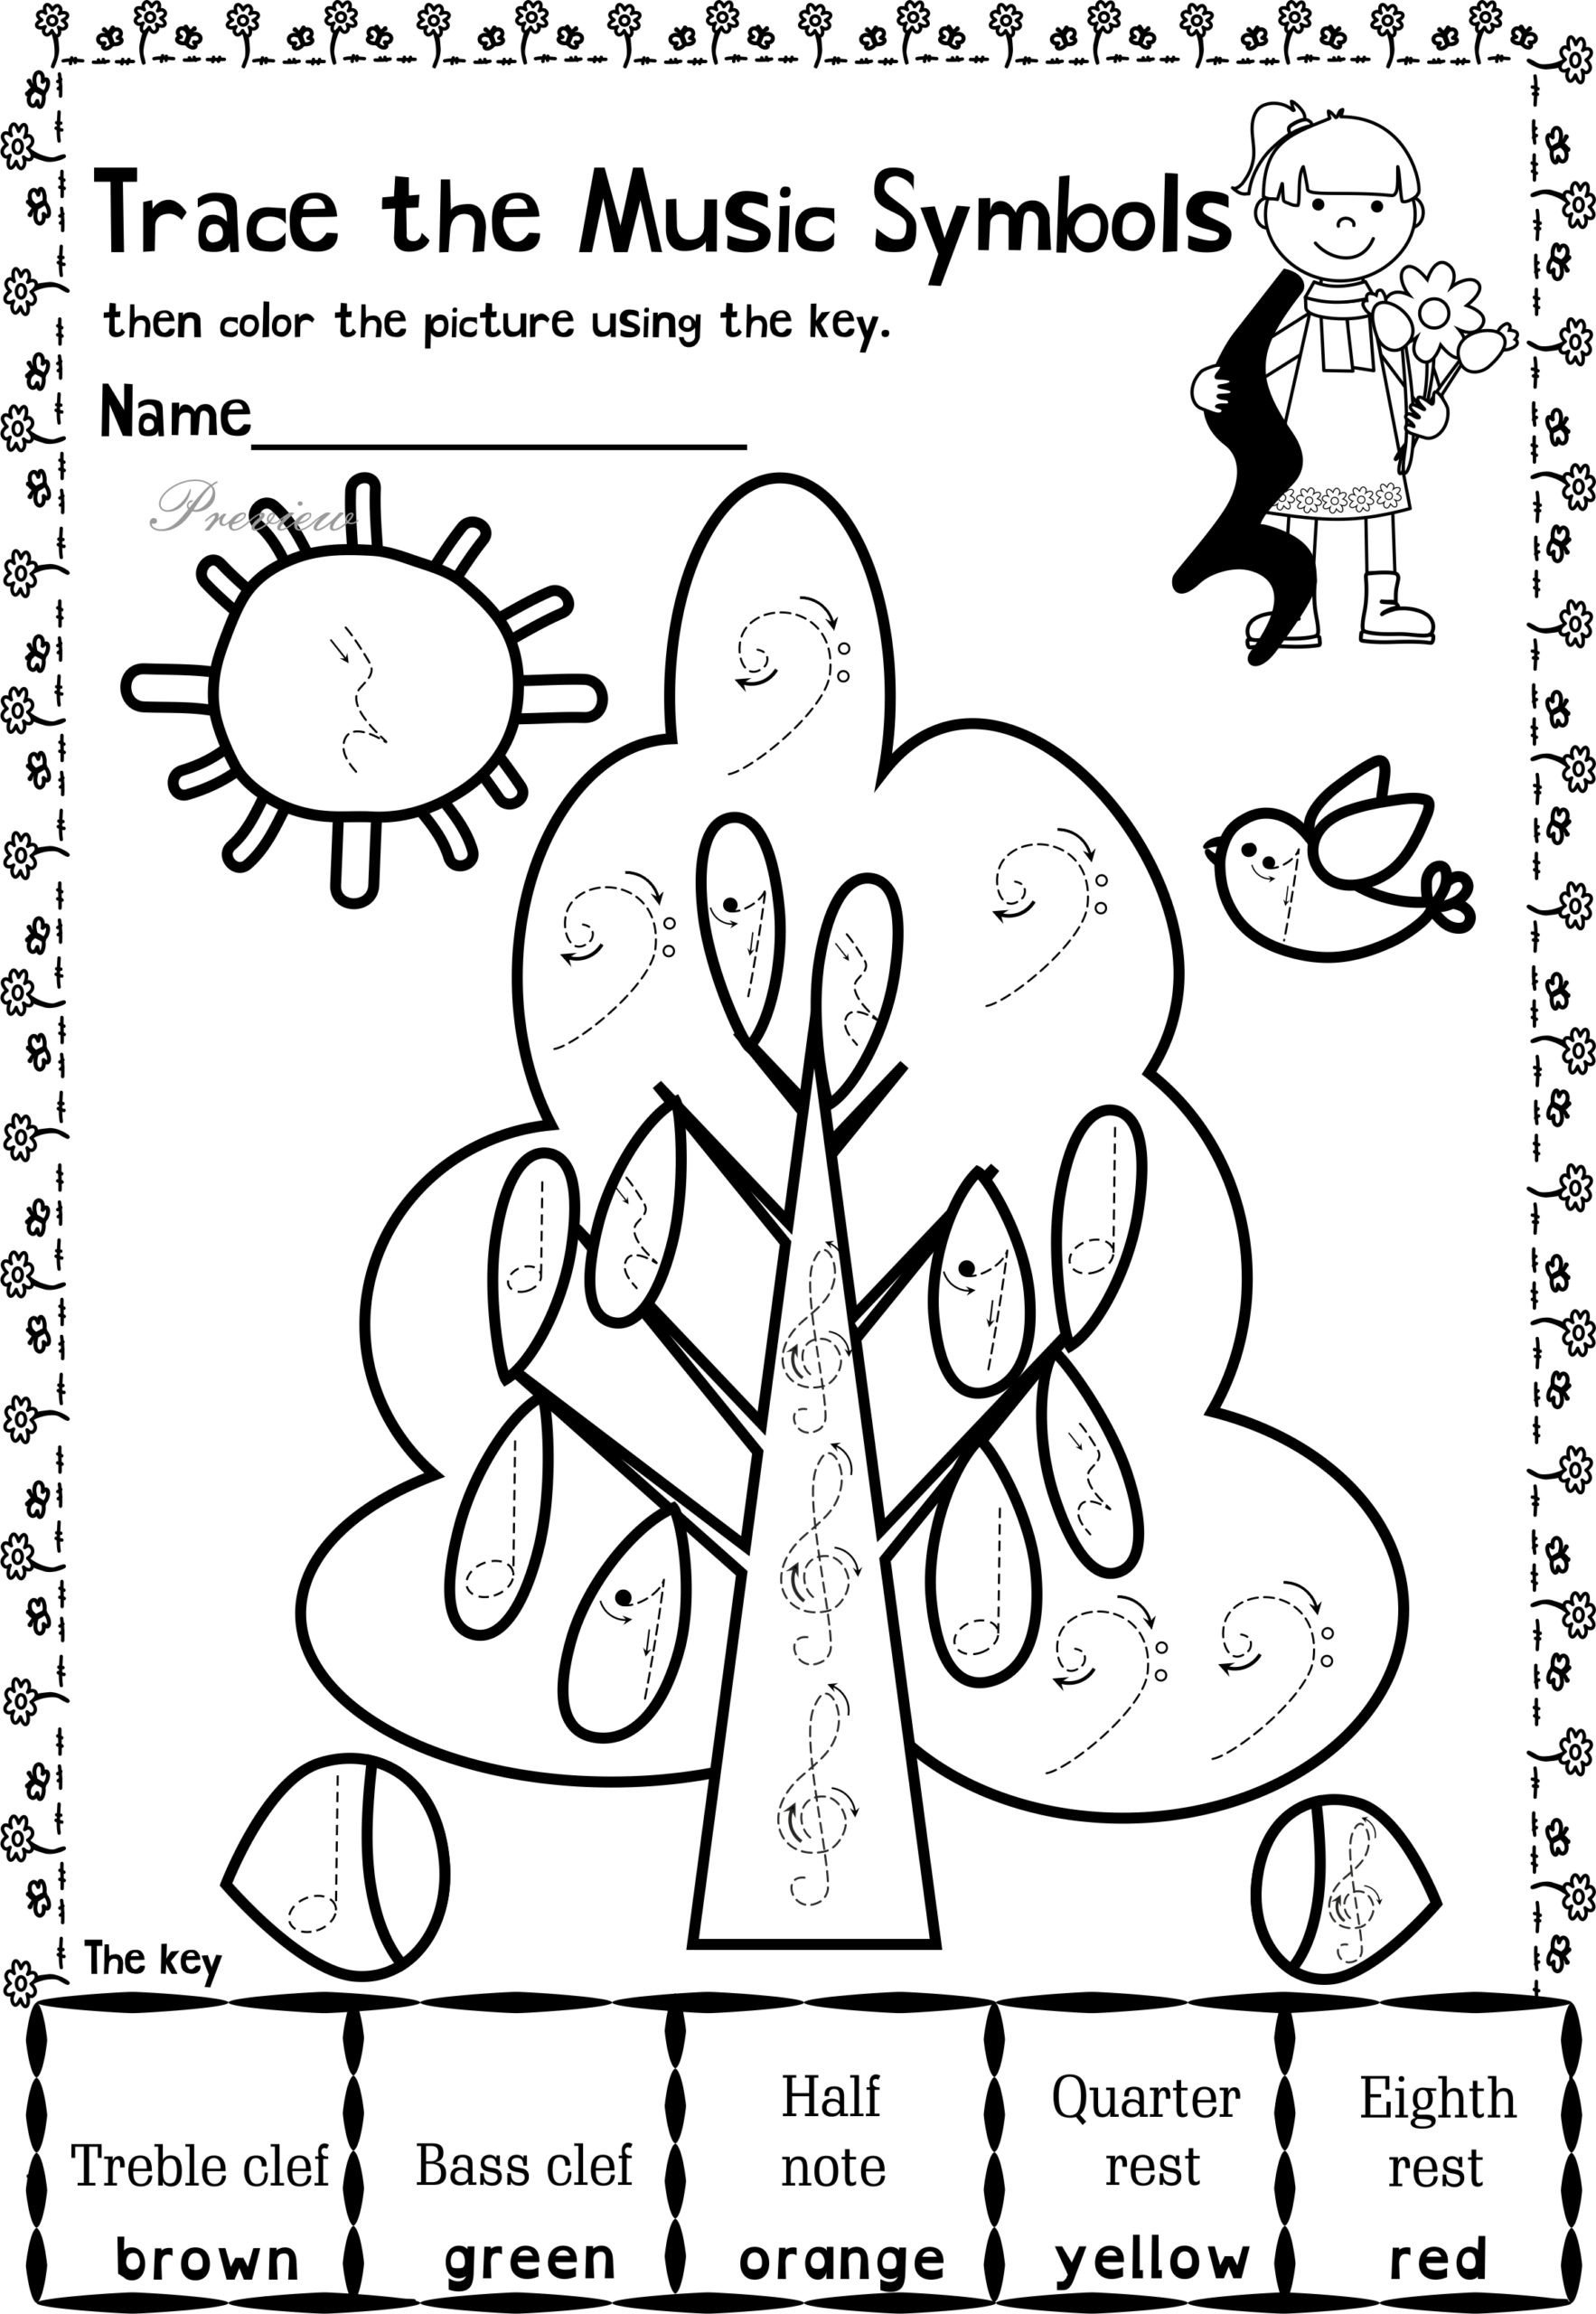 marveloususic coloring worksheets picture ideas themed at drawings free for kidsath refresherultiplying scaled book elementary